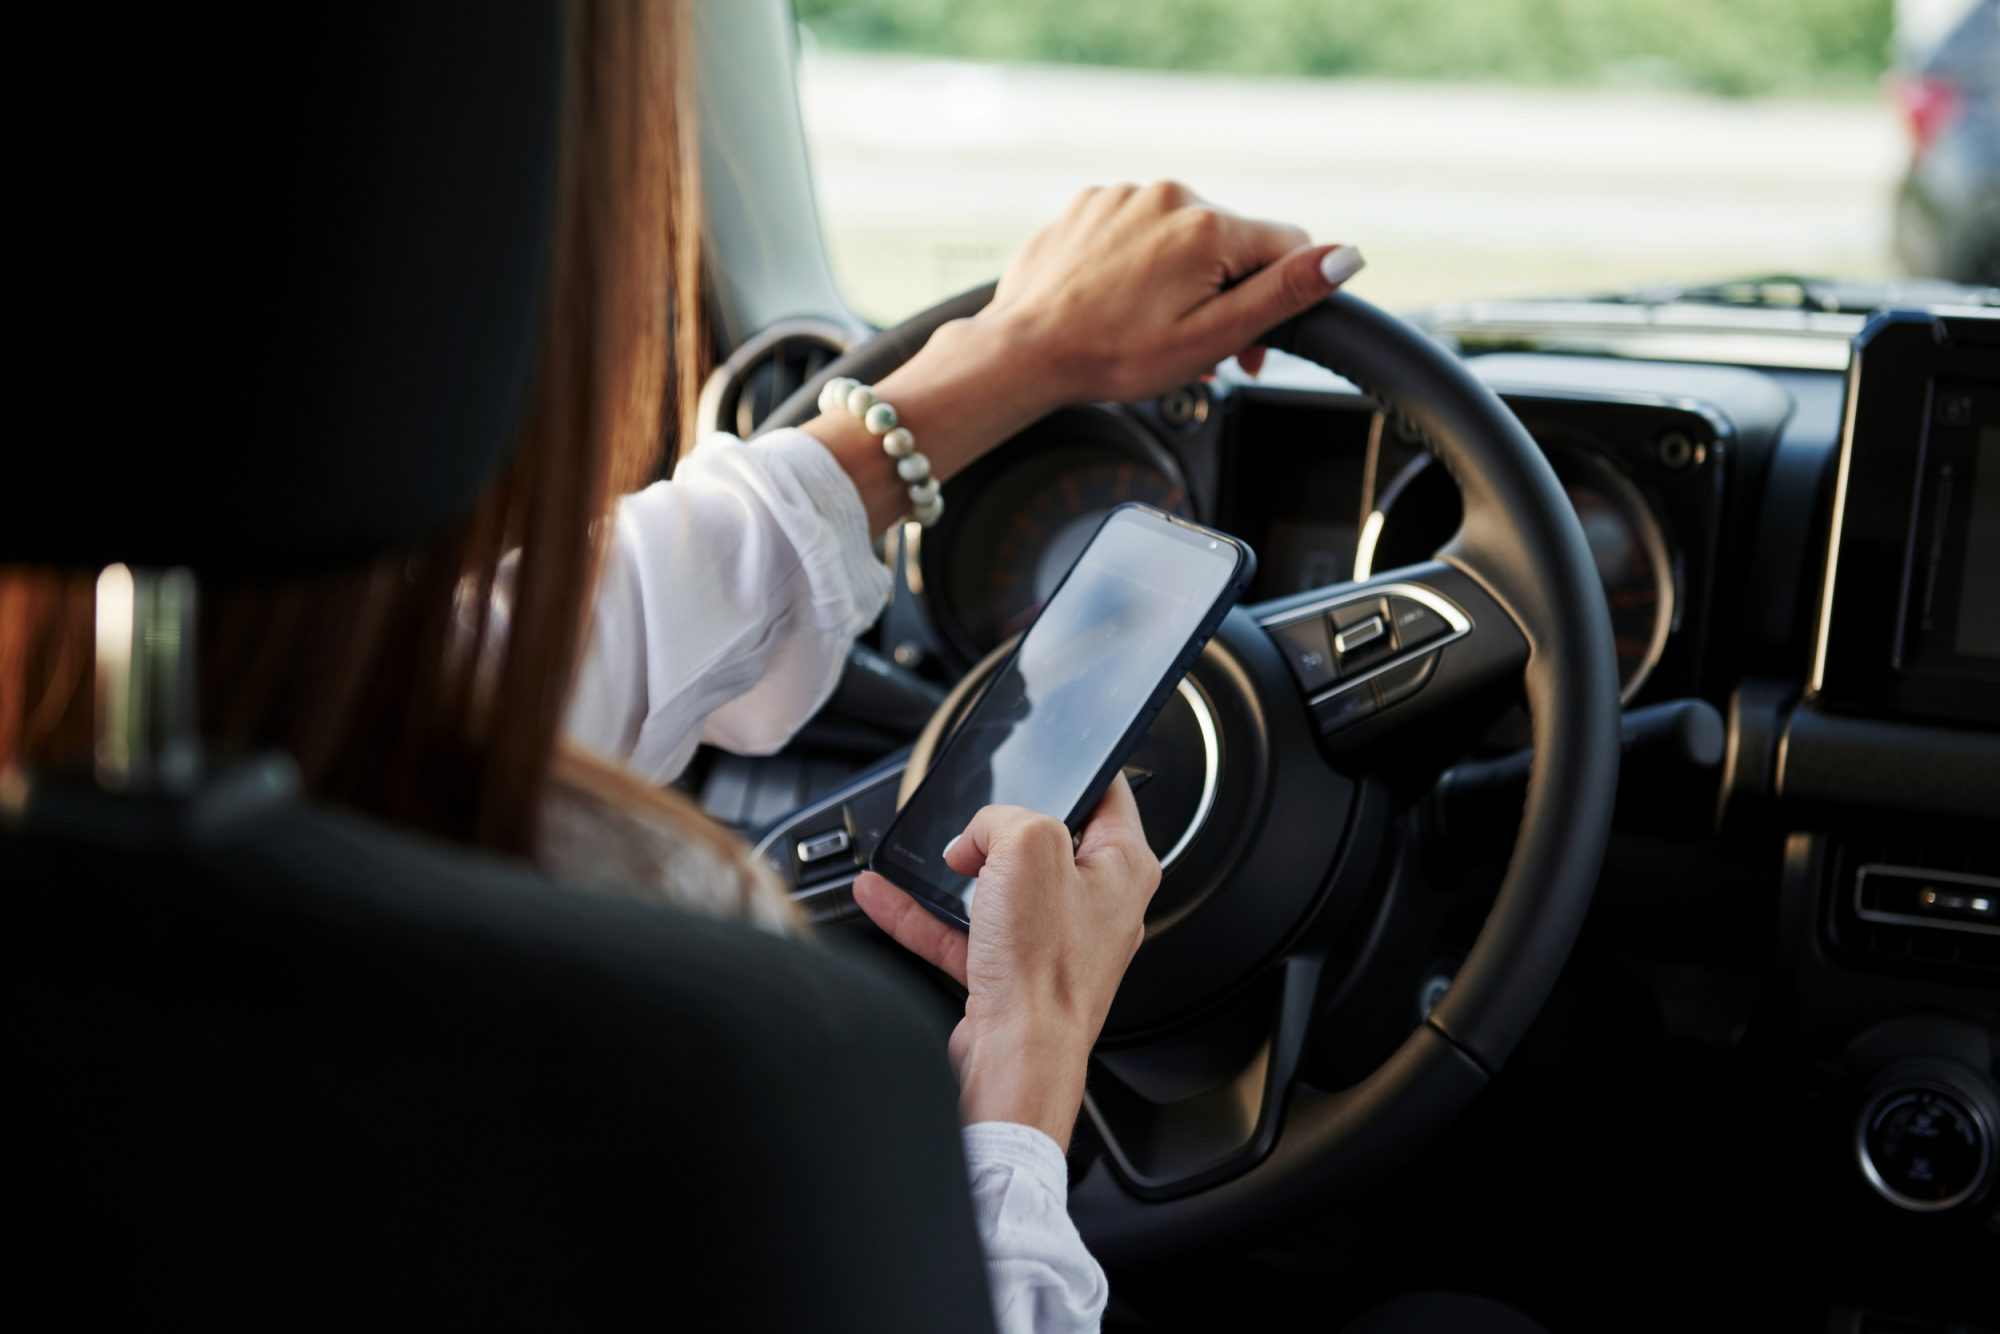 Proposals for heavy penalties for using phone while driving